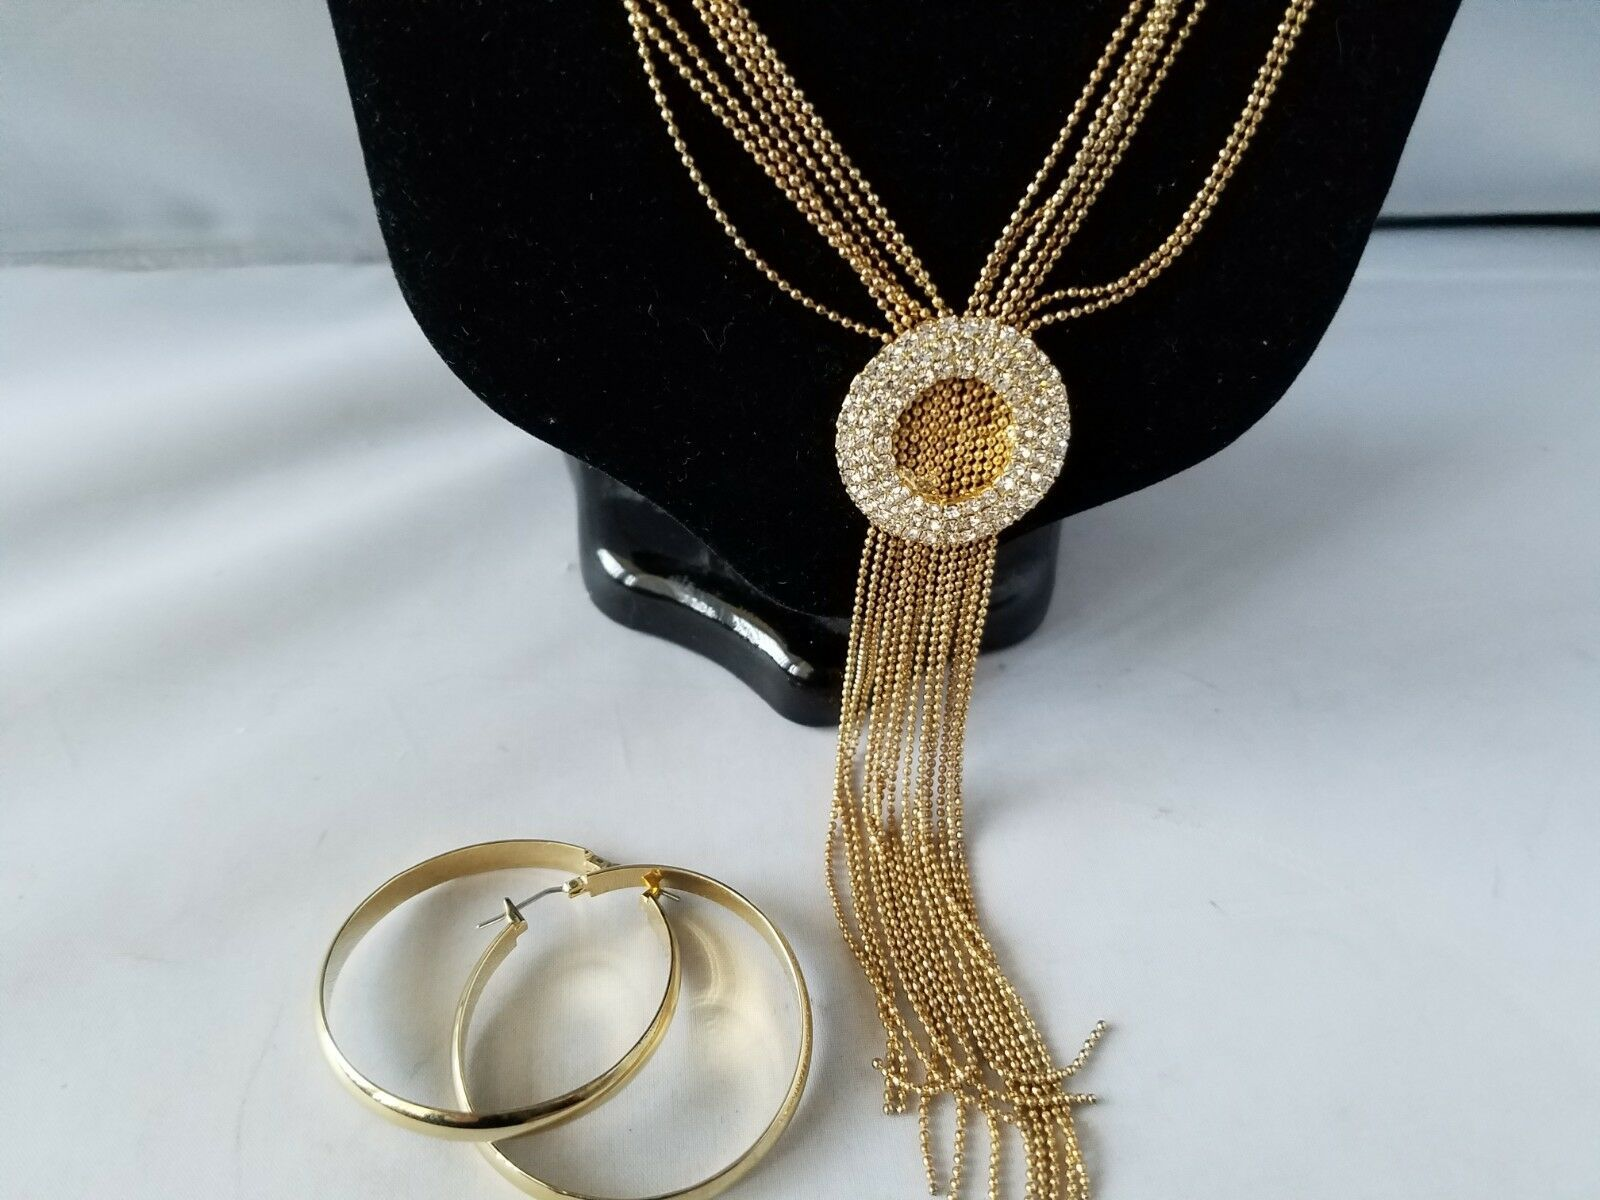 Vintage Fashion Jewelry Set Long Chain Necklace Gold Tone Flat Hoop Earrings